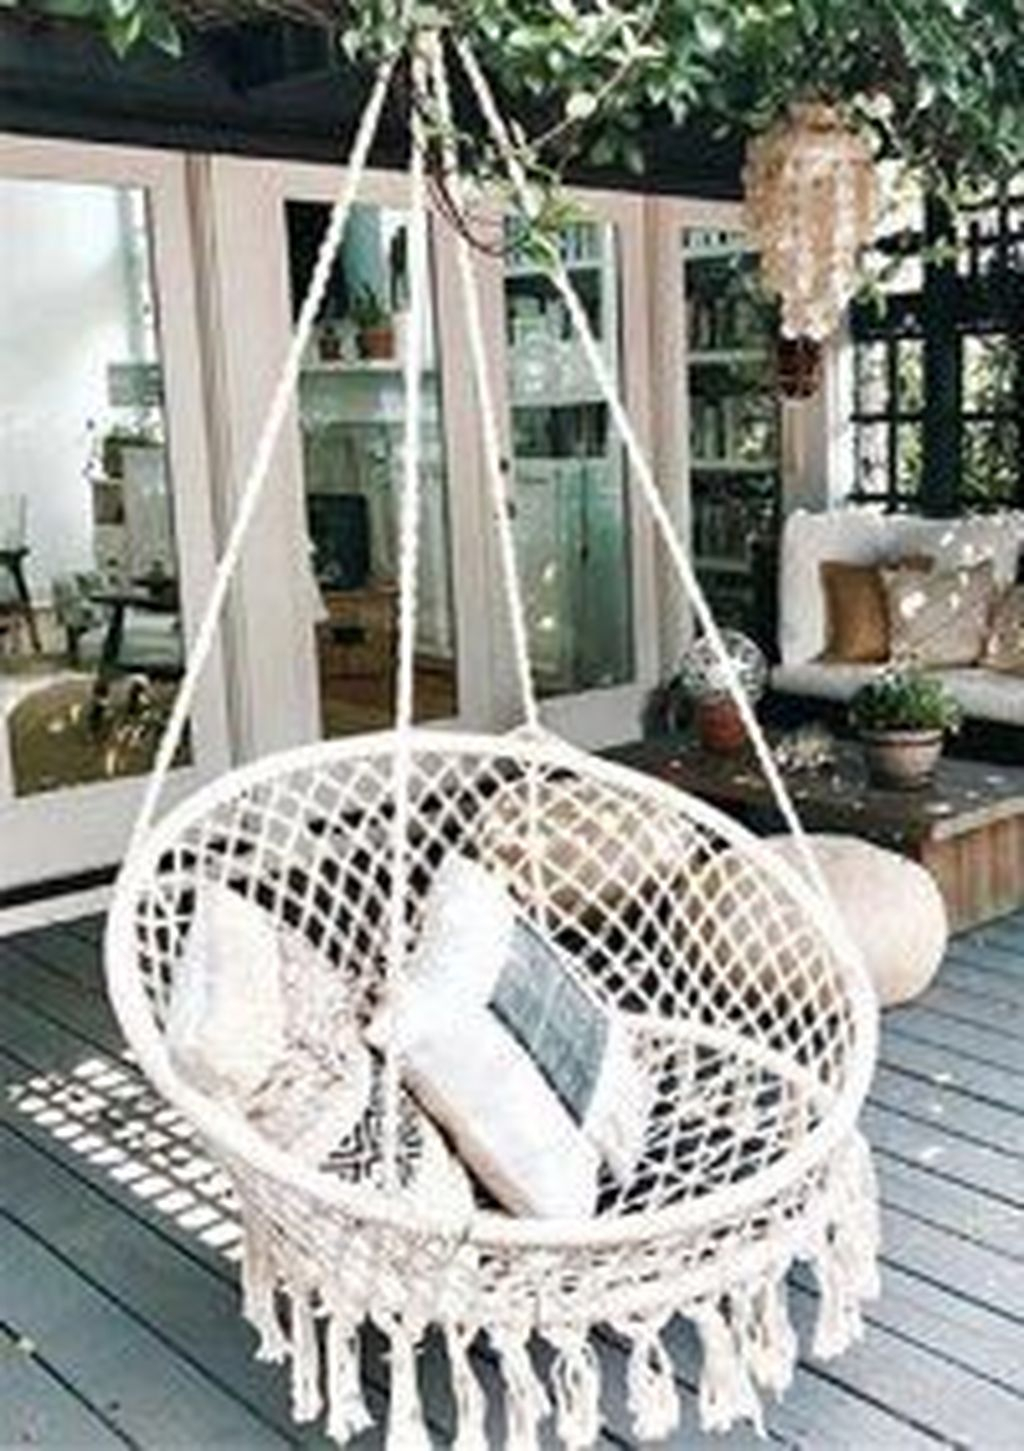 Modern Indoor And Outdoor Home Design Ideas For Your Spaces That Looks Amazing 25